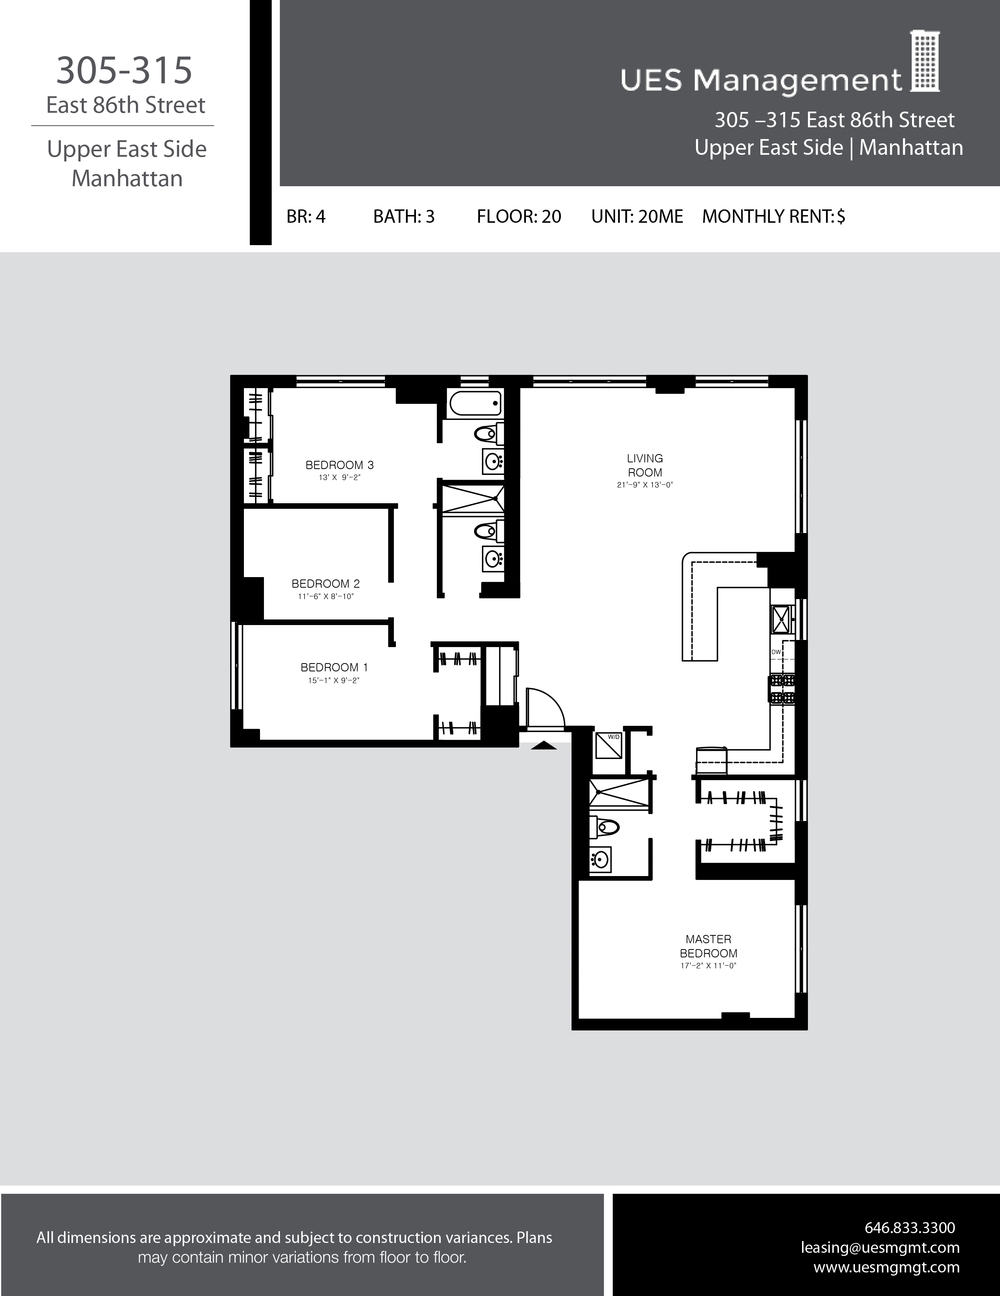 305-15 E86TH ST APT 20ME MARKETING PLAN.jpg